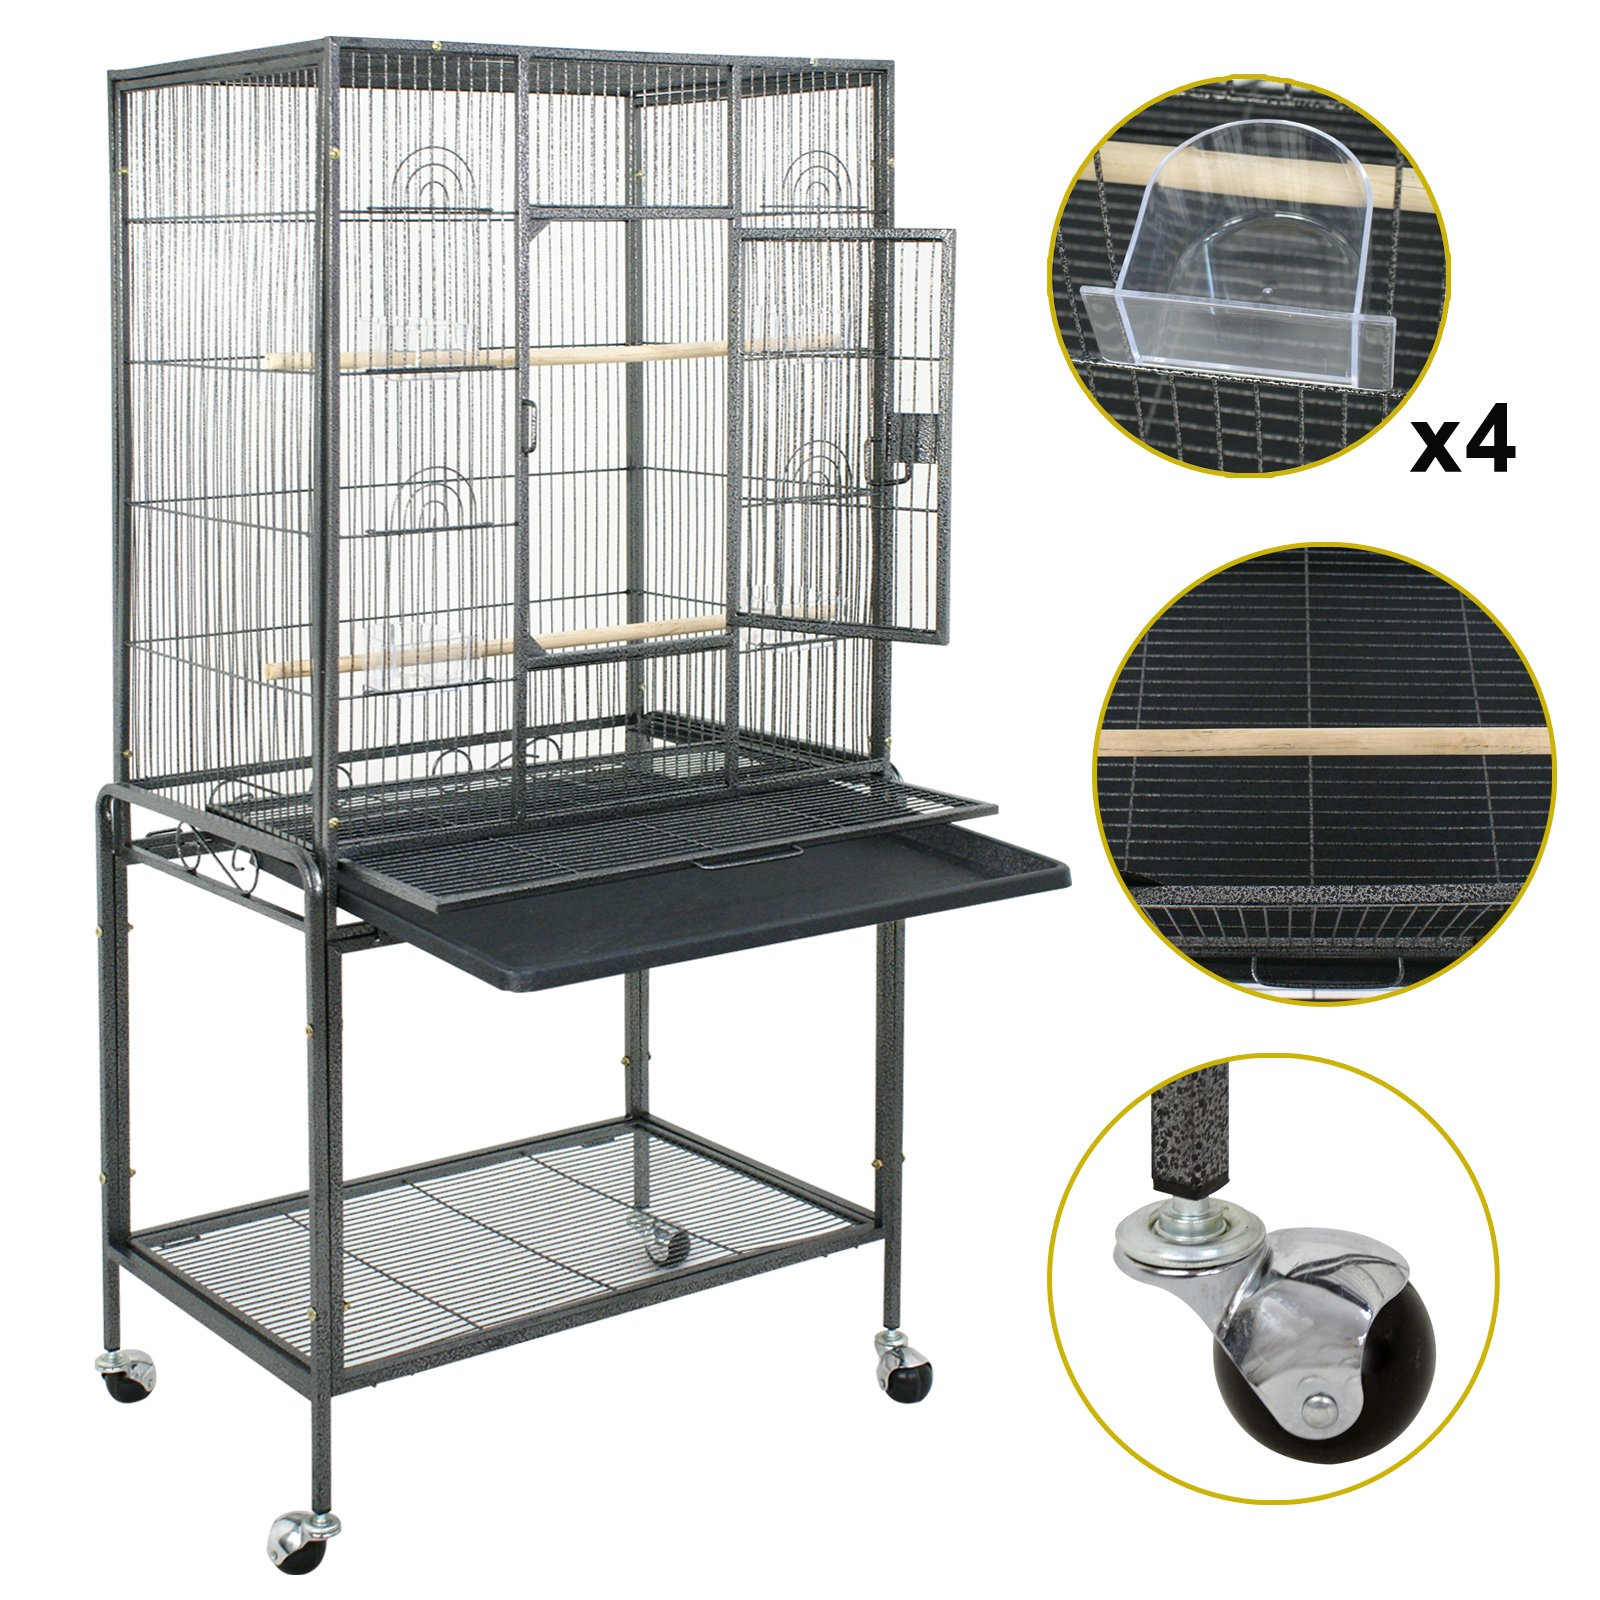 Nova Microdermabrasion 53'' Large Bird Cage Parrot Cockatiel Parakeet Macaw Cage W/Stand Perch Wrought Iron Pet Supplies by Nova Microdermabrasion